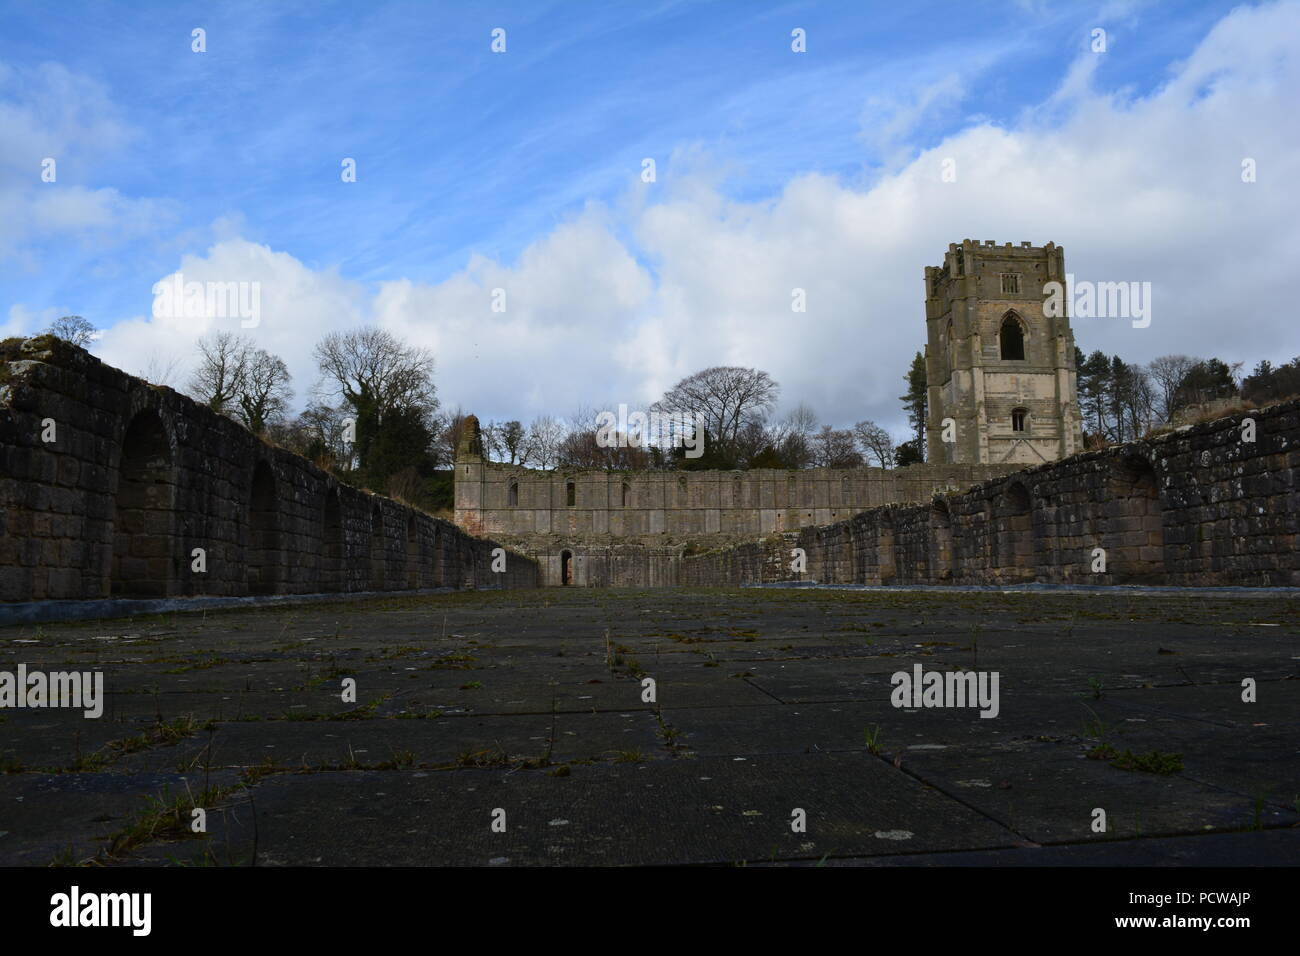 A visit to Fountains Abbey - Stock Image